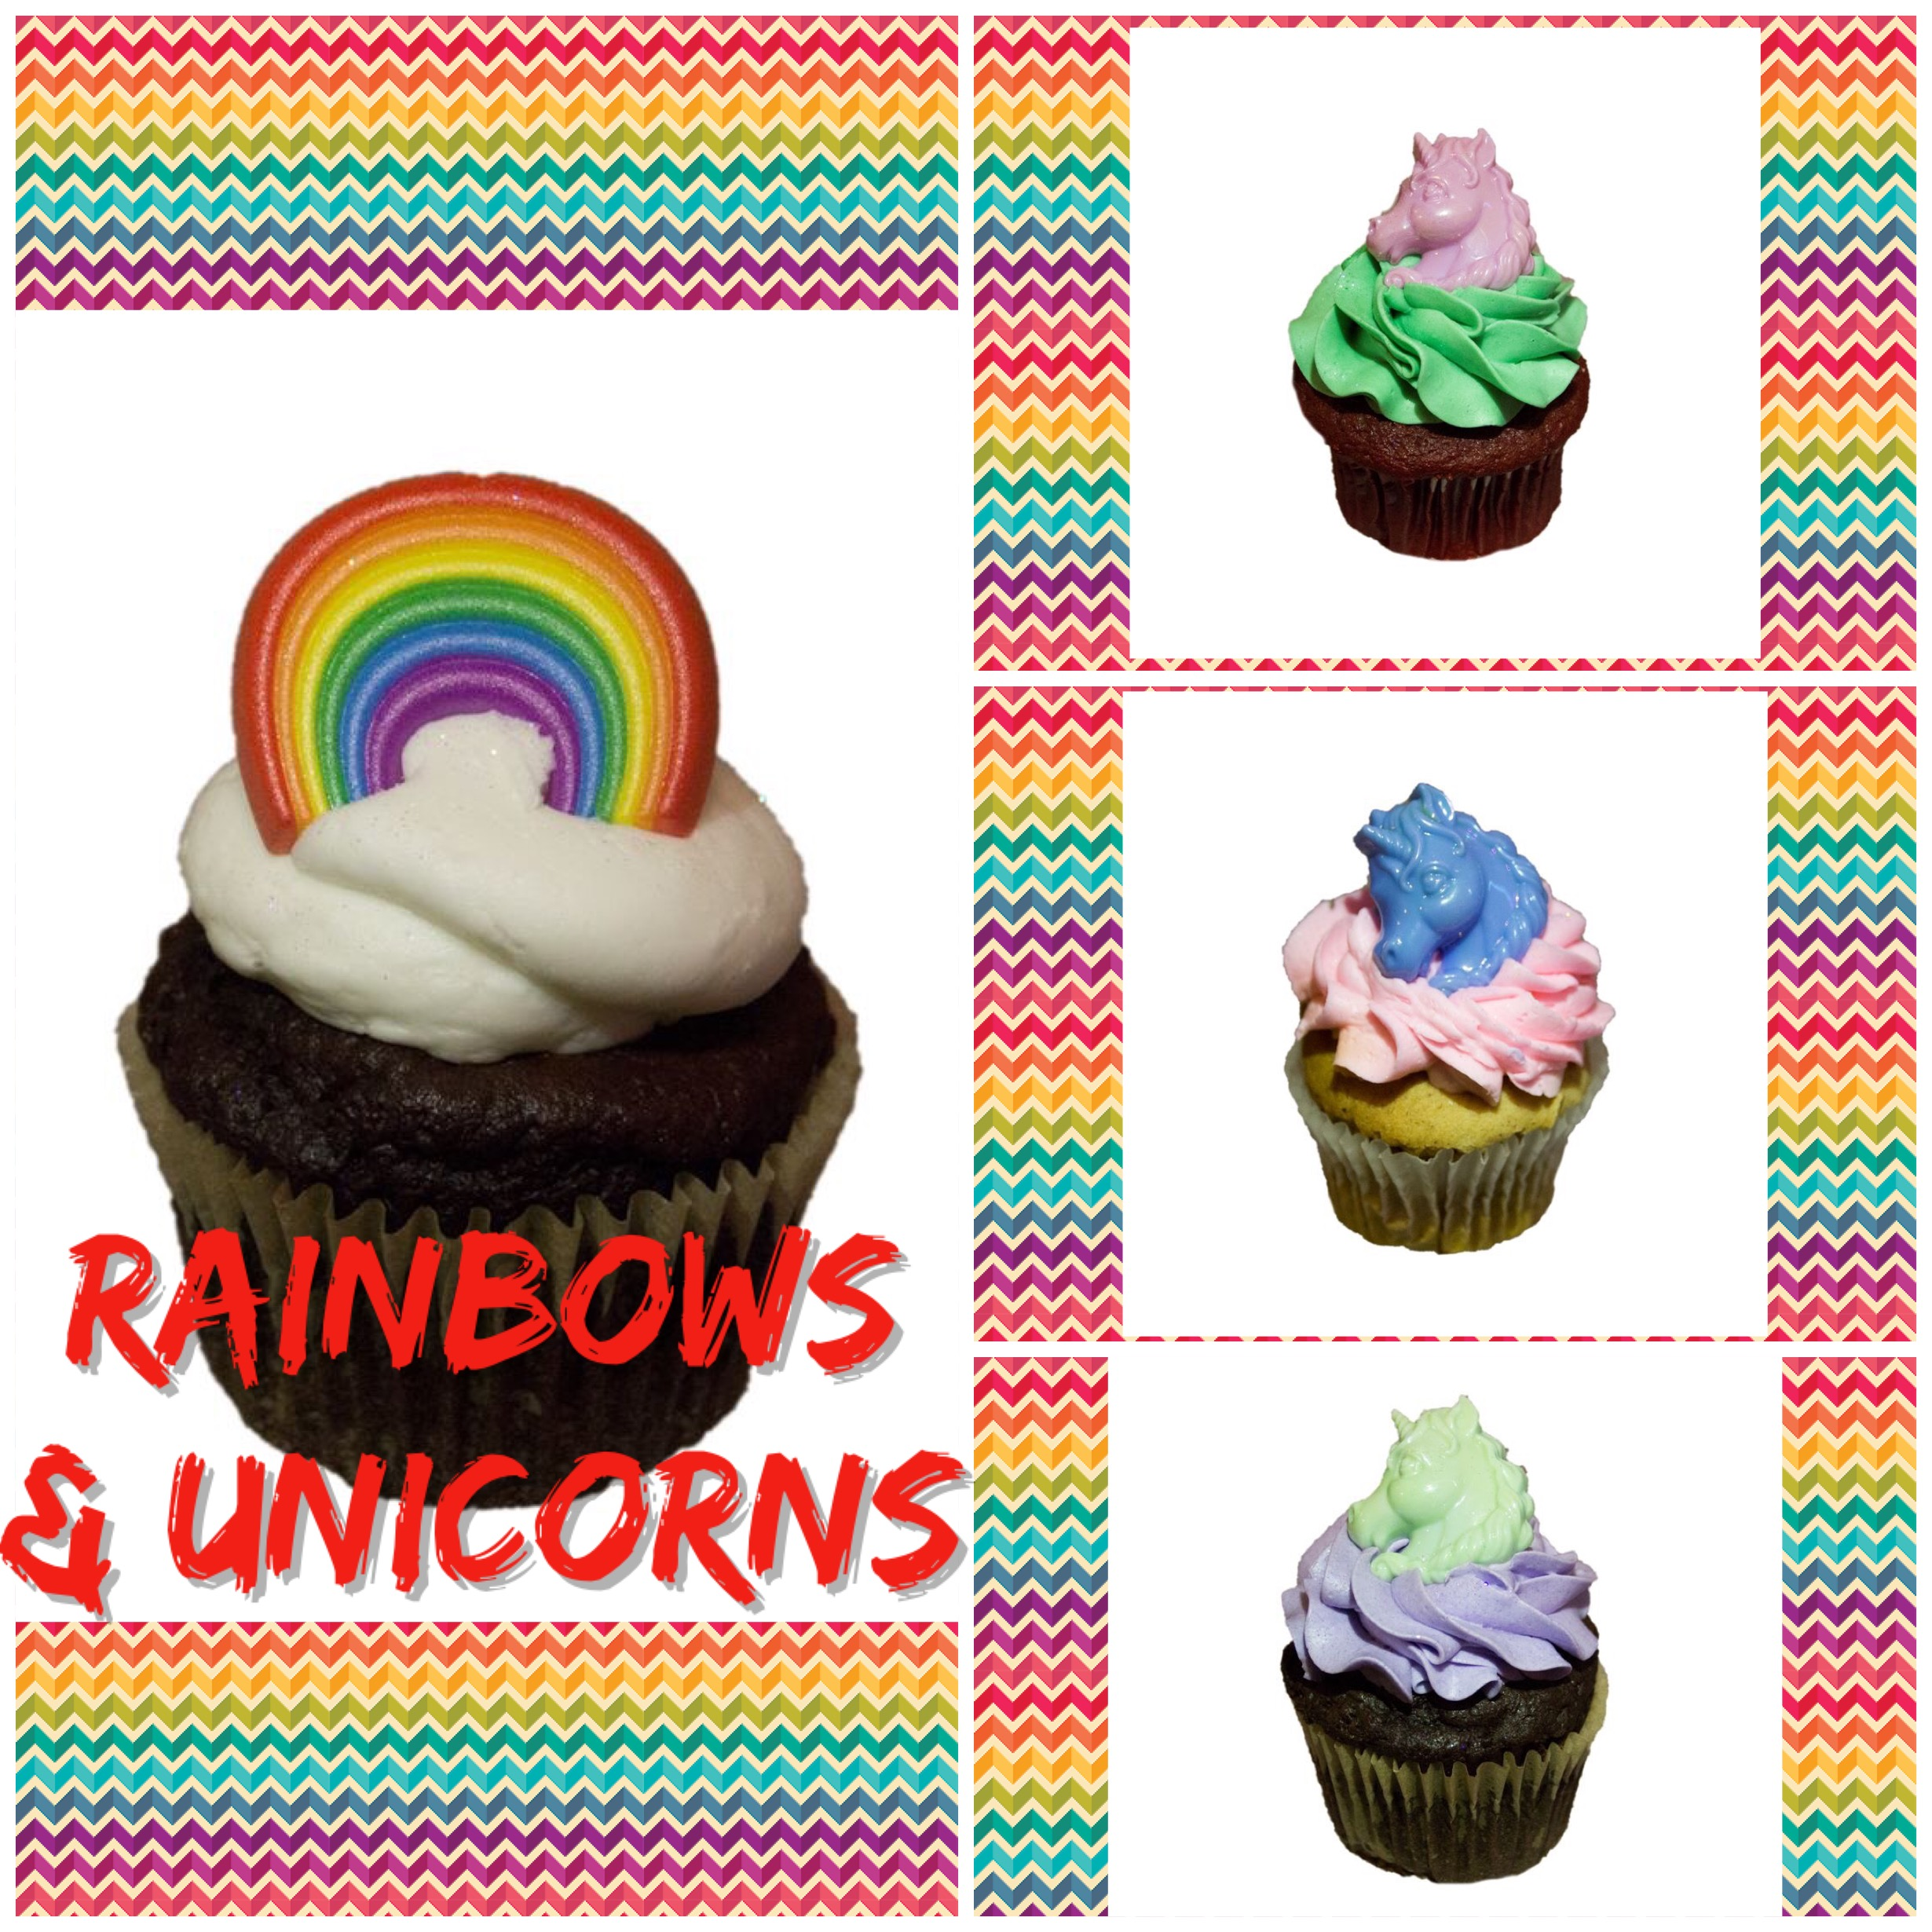 Rainbows & Unicorns Dozen